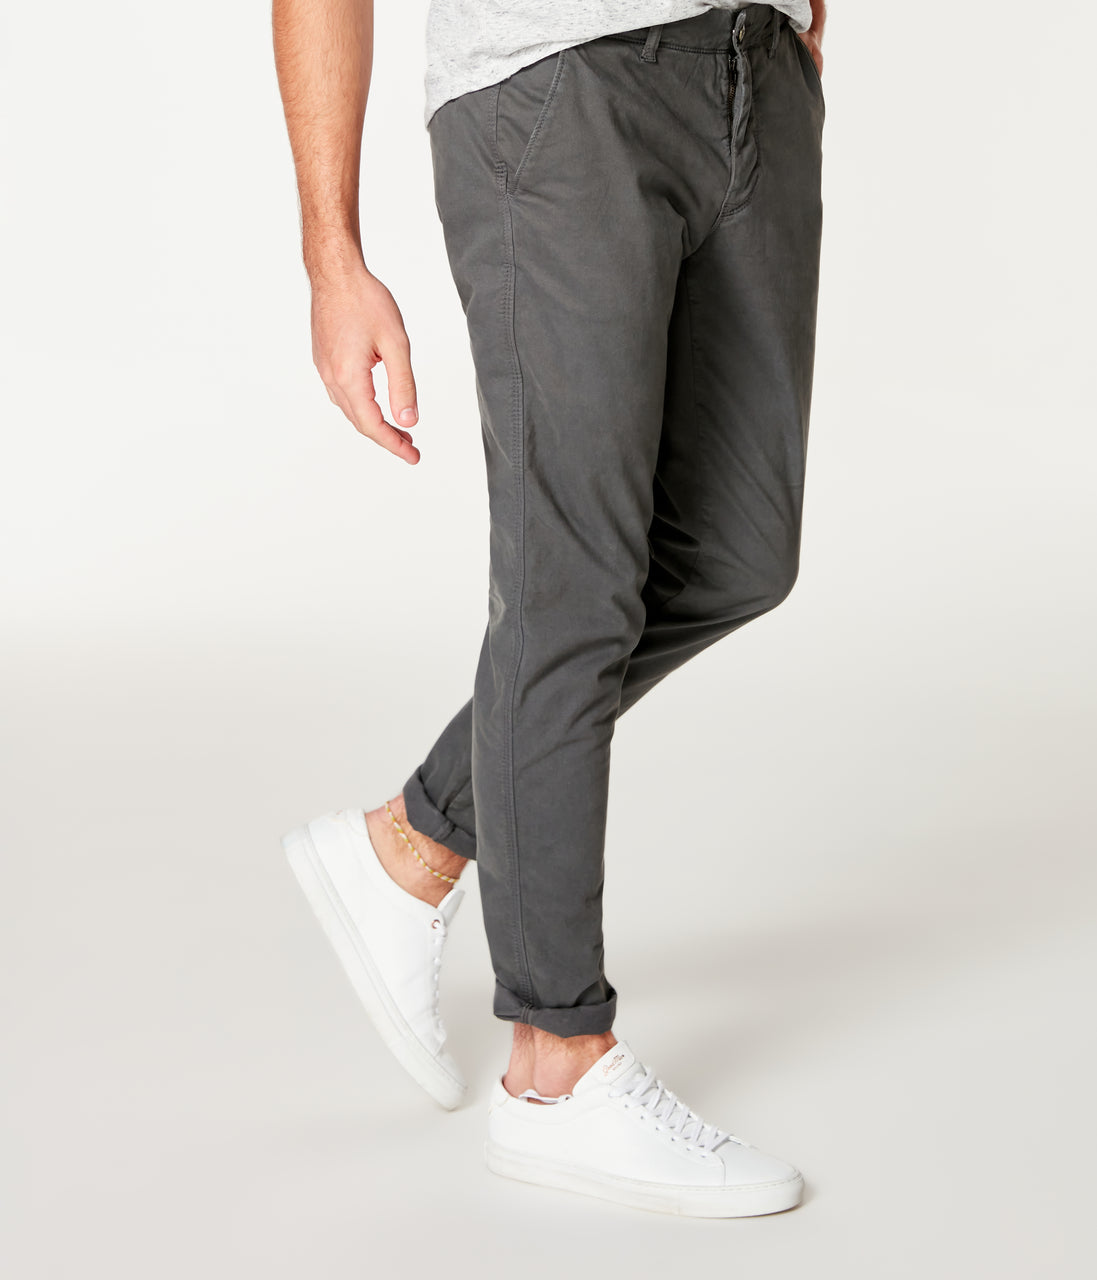 Pro Stretch Twill Star Chino - Magnet - Good Man Brand - Pro Stretch Twill Star Chino - Magnet